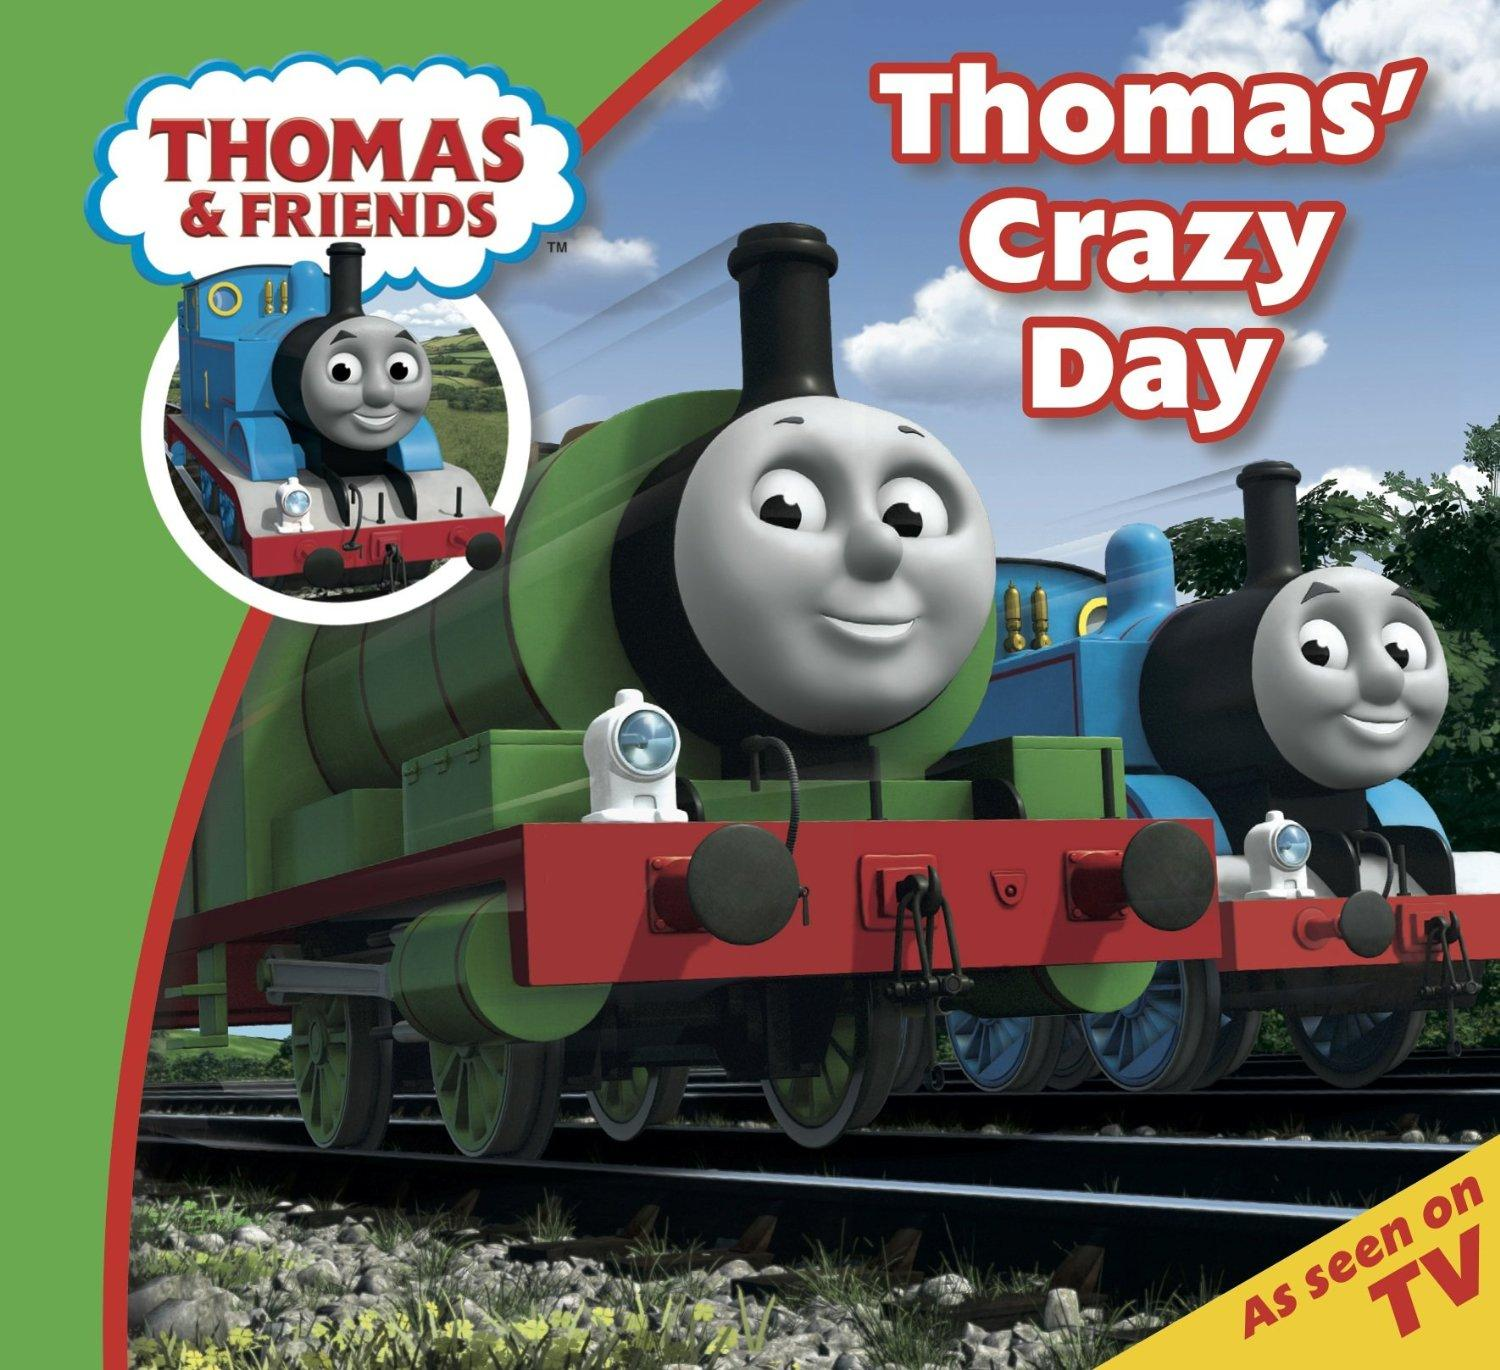 Thomas & Friends - Thomas' Crazy Day